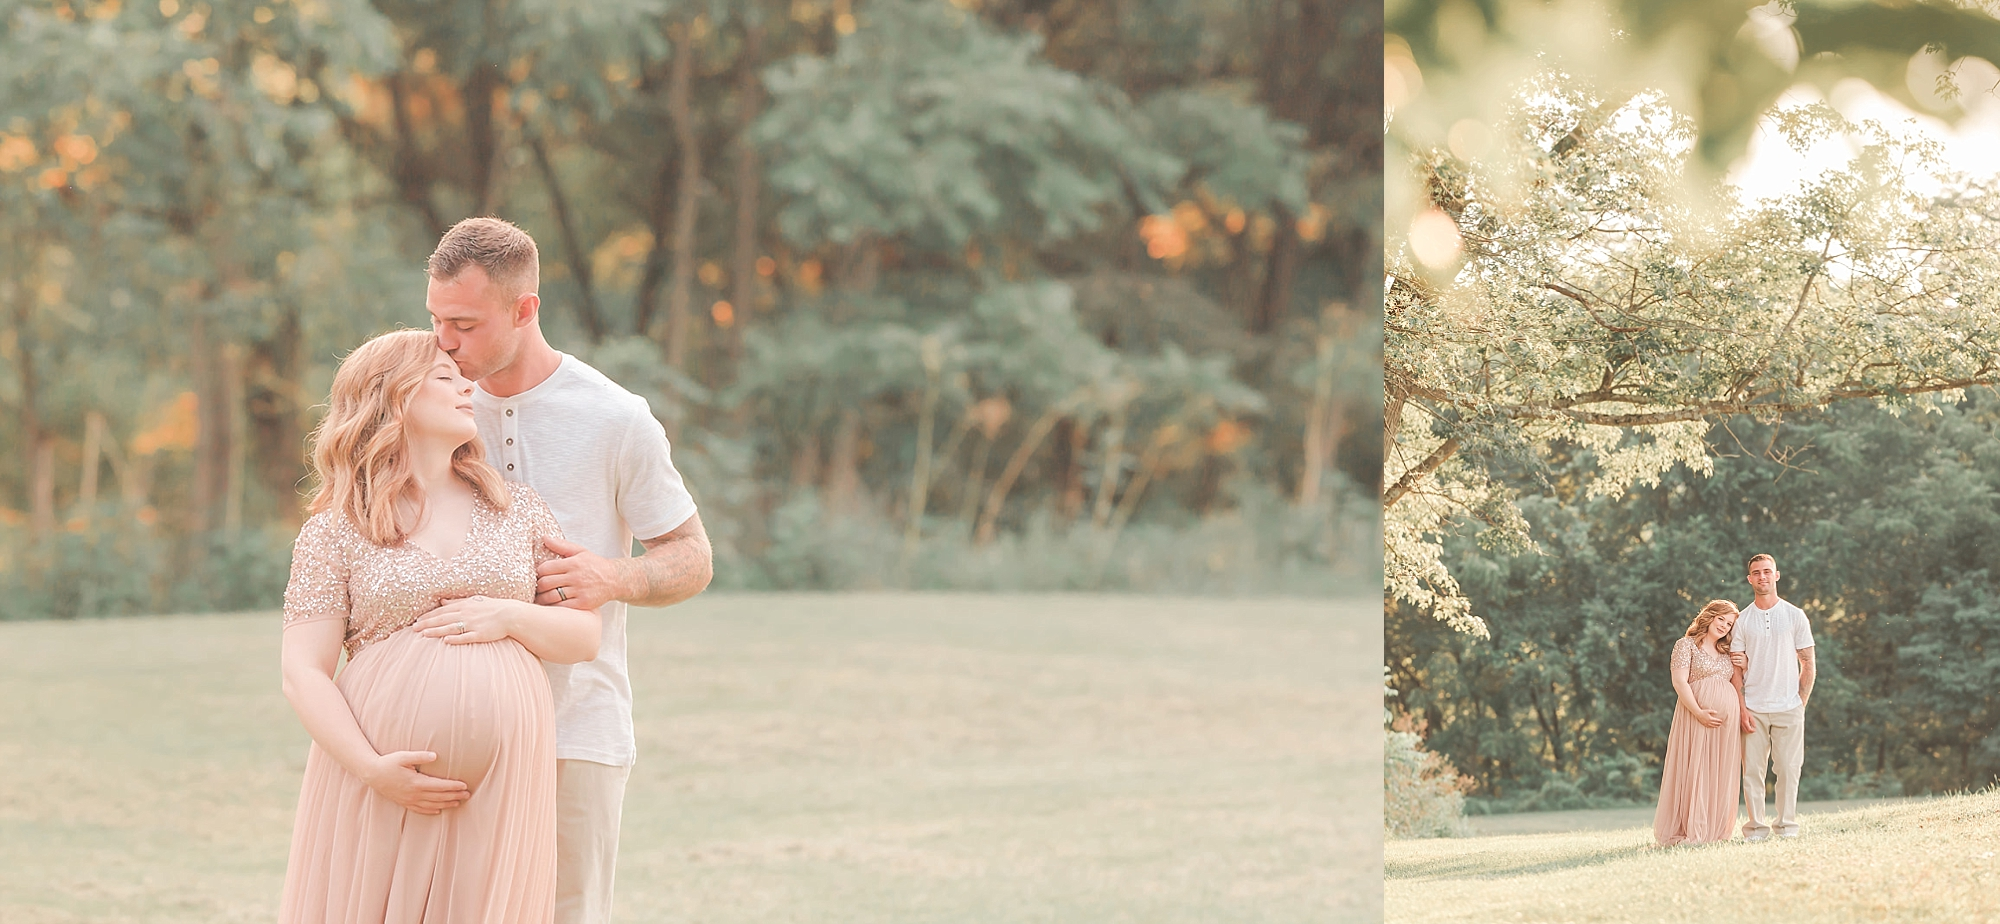 Pittsburgh PA outdoor maternity photography session